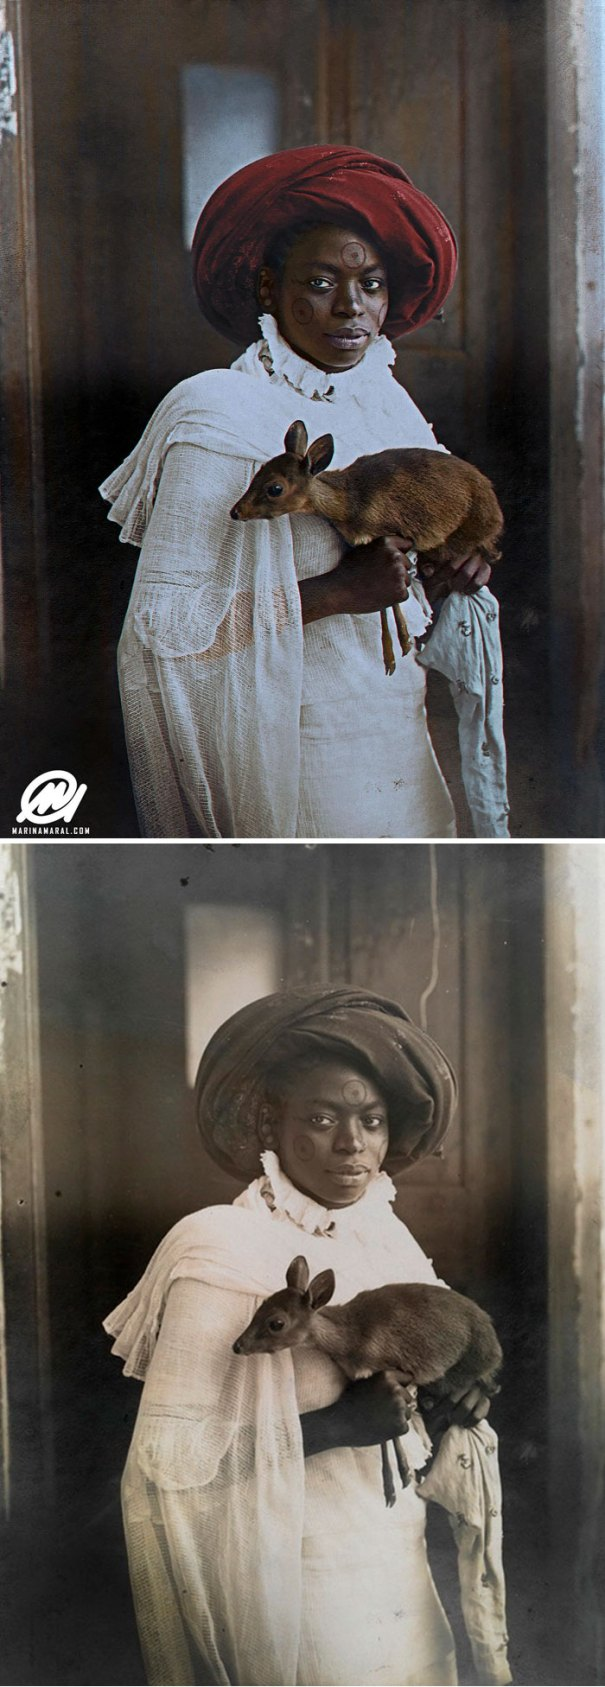 5b6d3b6963593-colorized-historic-photos-marina-amaral-10-5b6acd436cf77__700 This Artist Colorizes Old Black & White Photos, And They Will Change The Way People Imagine History Photography Random